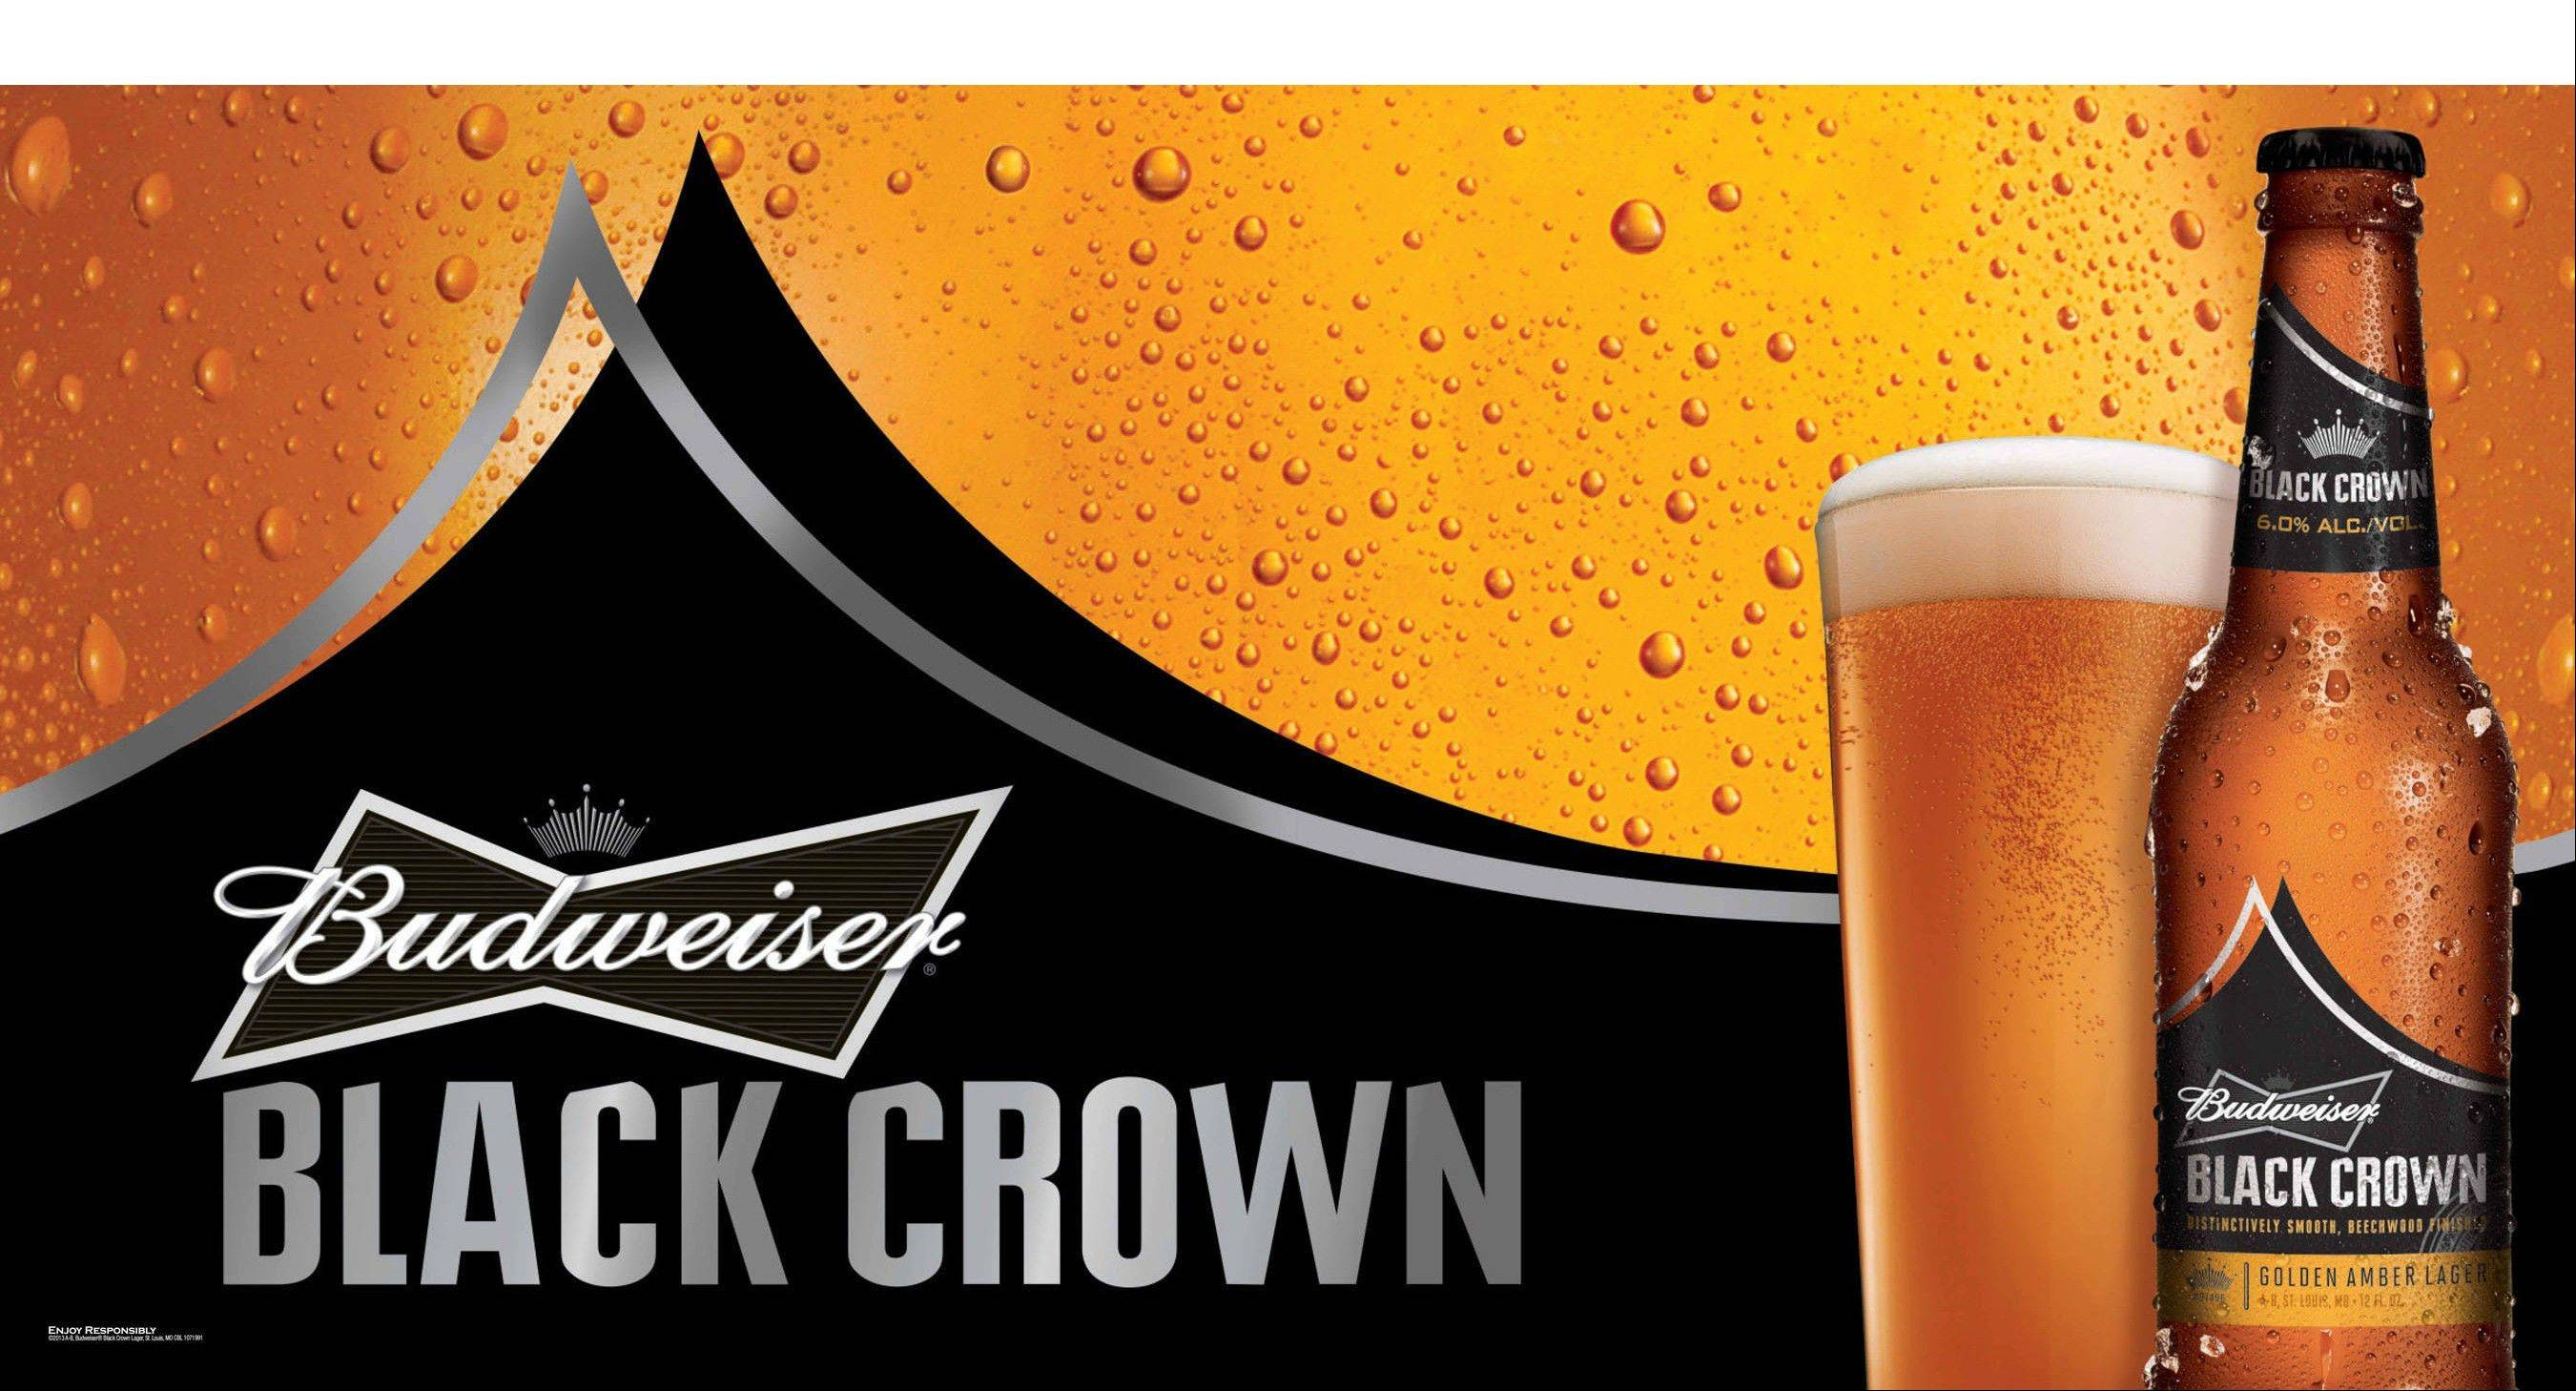 Budweiser Black Crown proved to be the crowd favorite during Project 12, a nearly yearlong process in which 12 beers from Budweiser brewmasters across the United States were ultimately narrowed to one winner through consumer sampling and feedback. Anheuser-Busch InBev is introducing the new specialty brew with a Super Bowl ad.